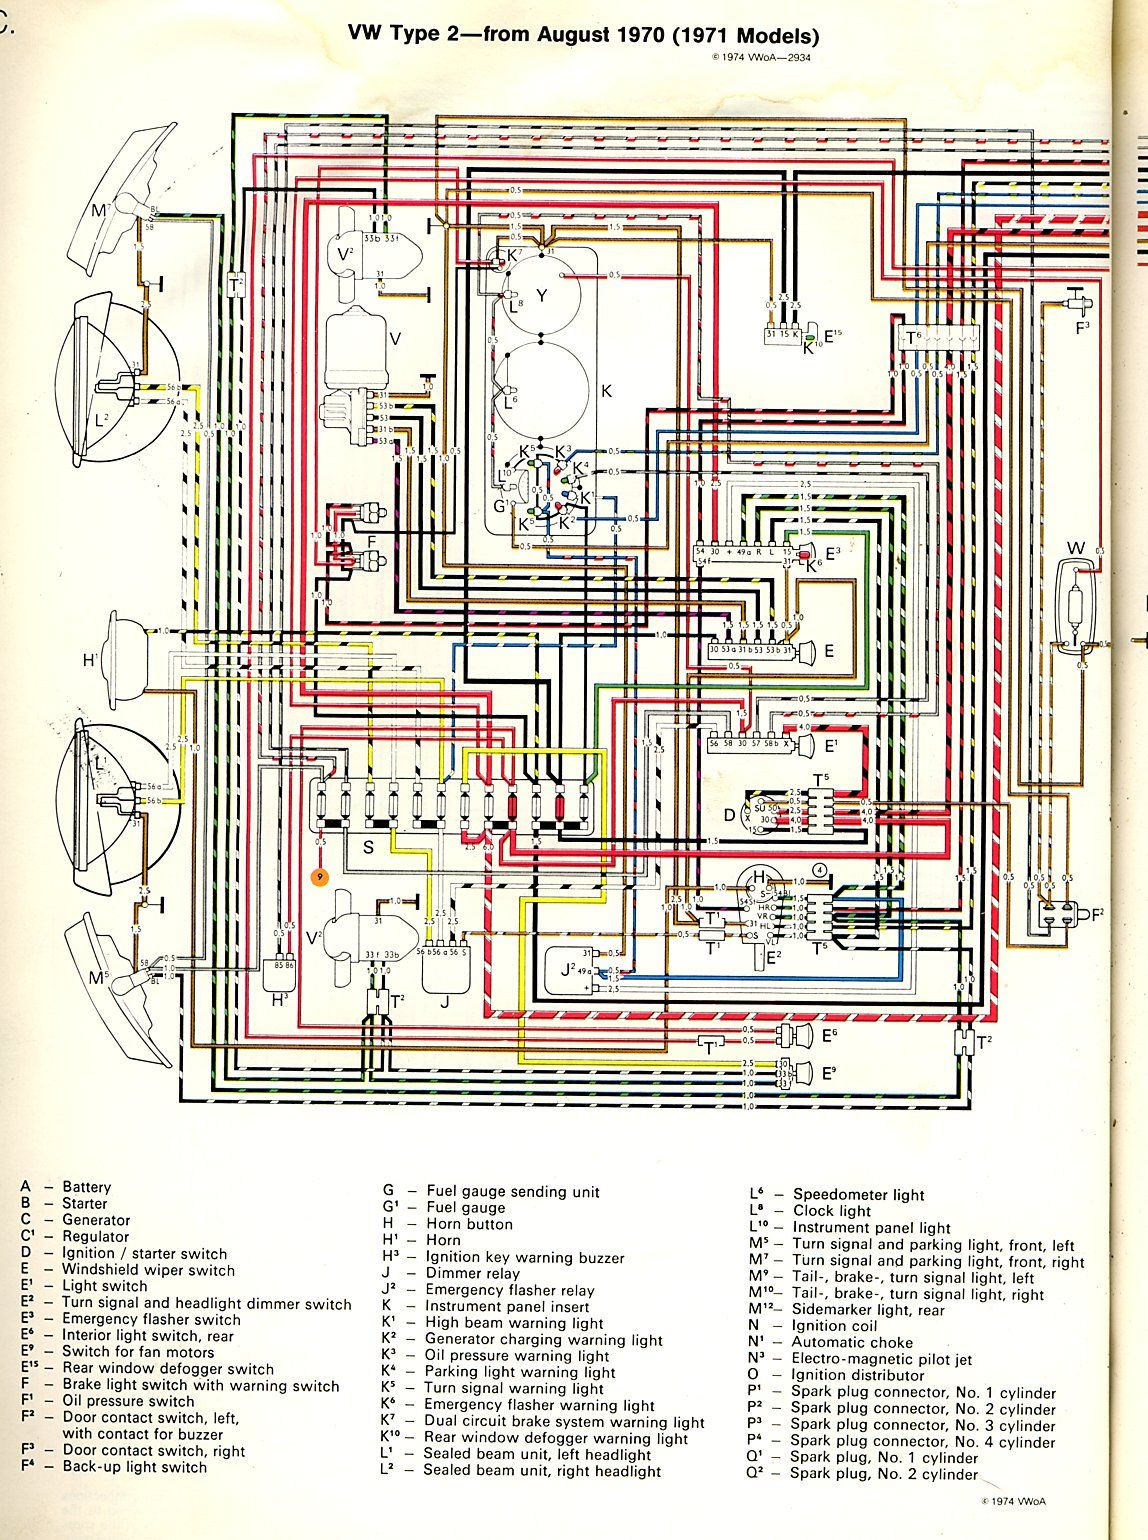 26730f3f6ceb3f1e1b50646c57249616 1971 bus wiring diagram thegoldenbug com stuff to try 1971 vw beetle wiring diagram at panicattacktreatment.co